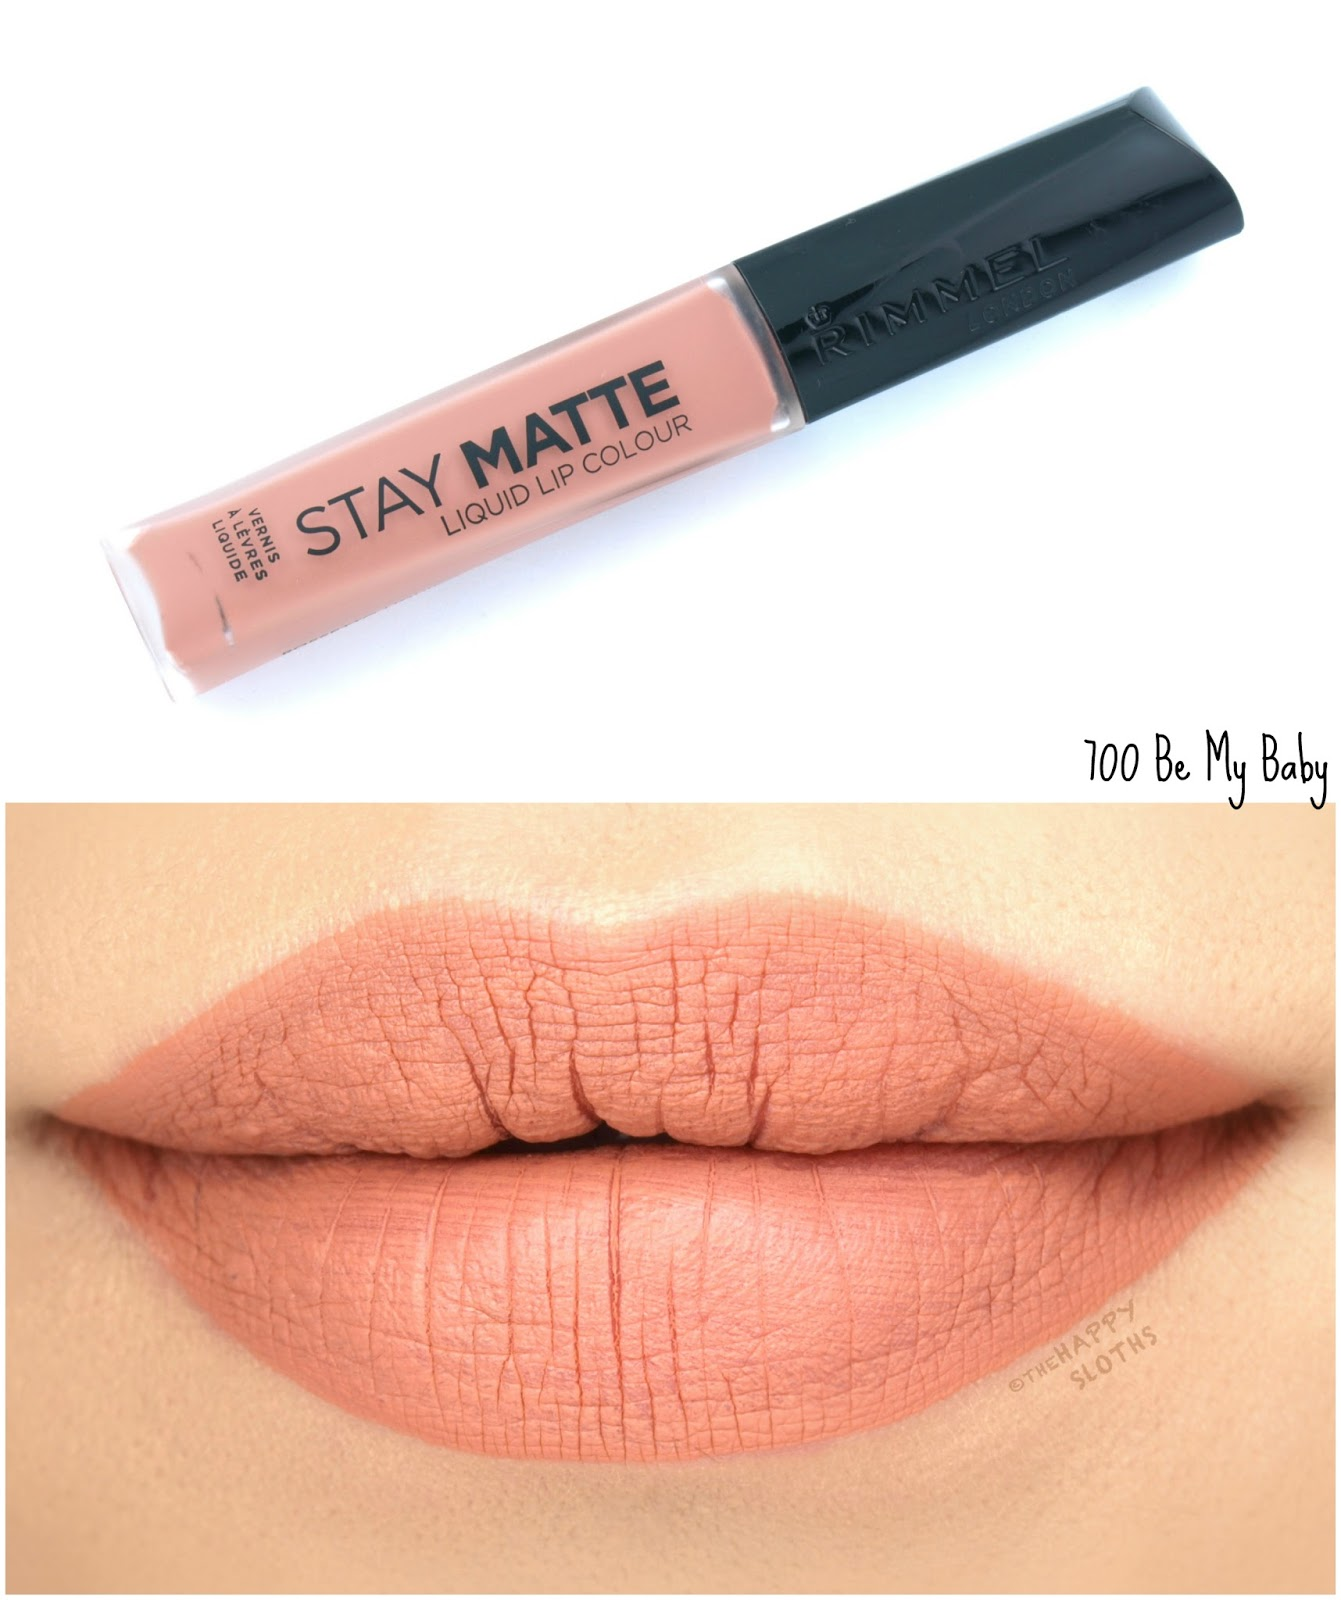 Rimmel London Stay Matte Liquid Lip Colour | 700 Be My Baby: Review and Swatches